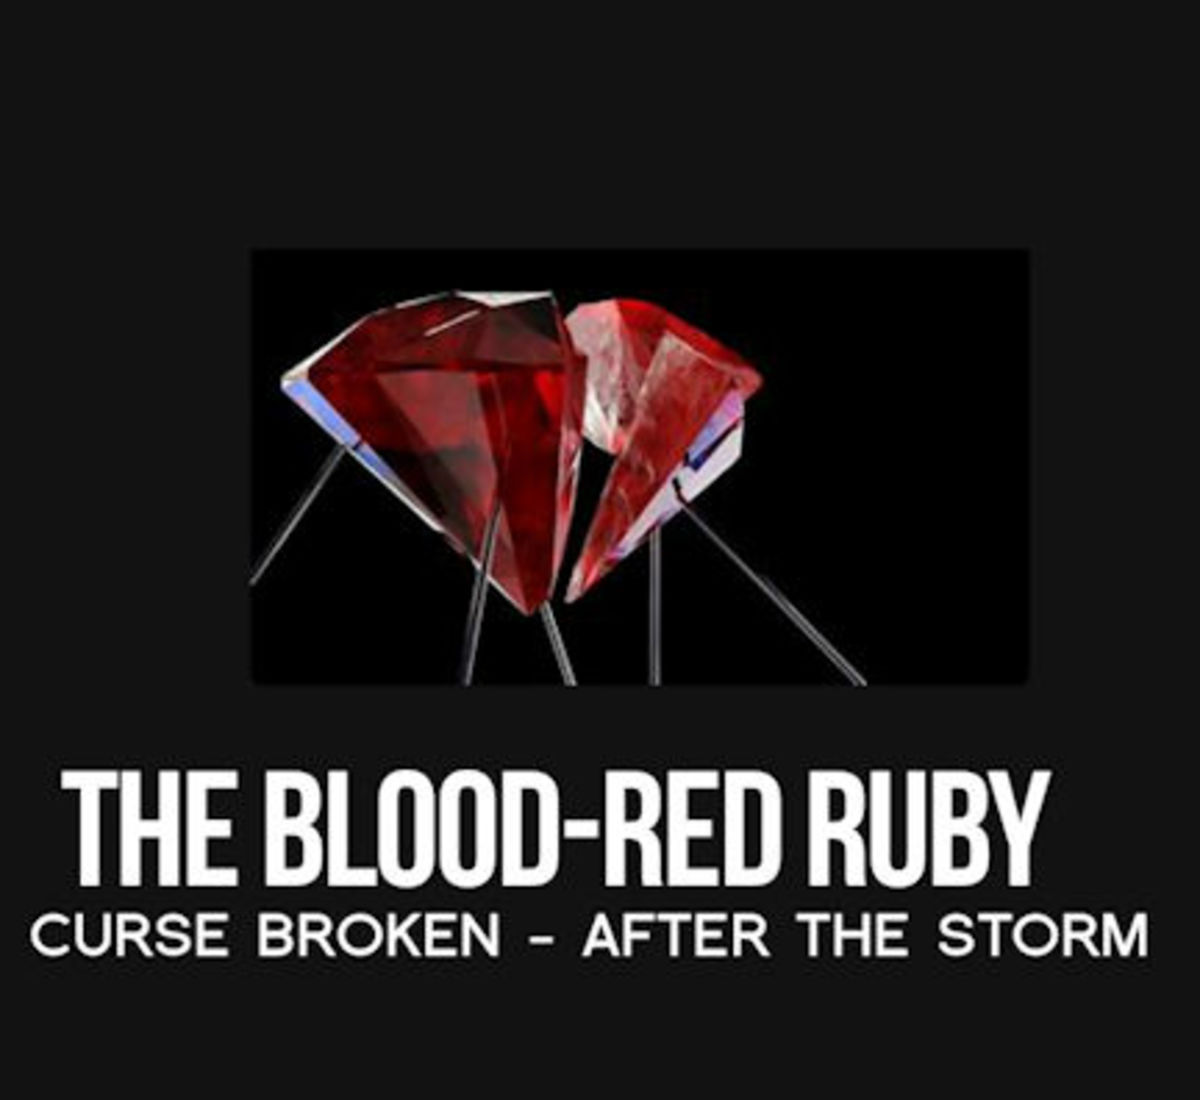 the-blood-red-ruby-after-the-storm-19